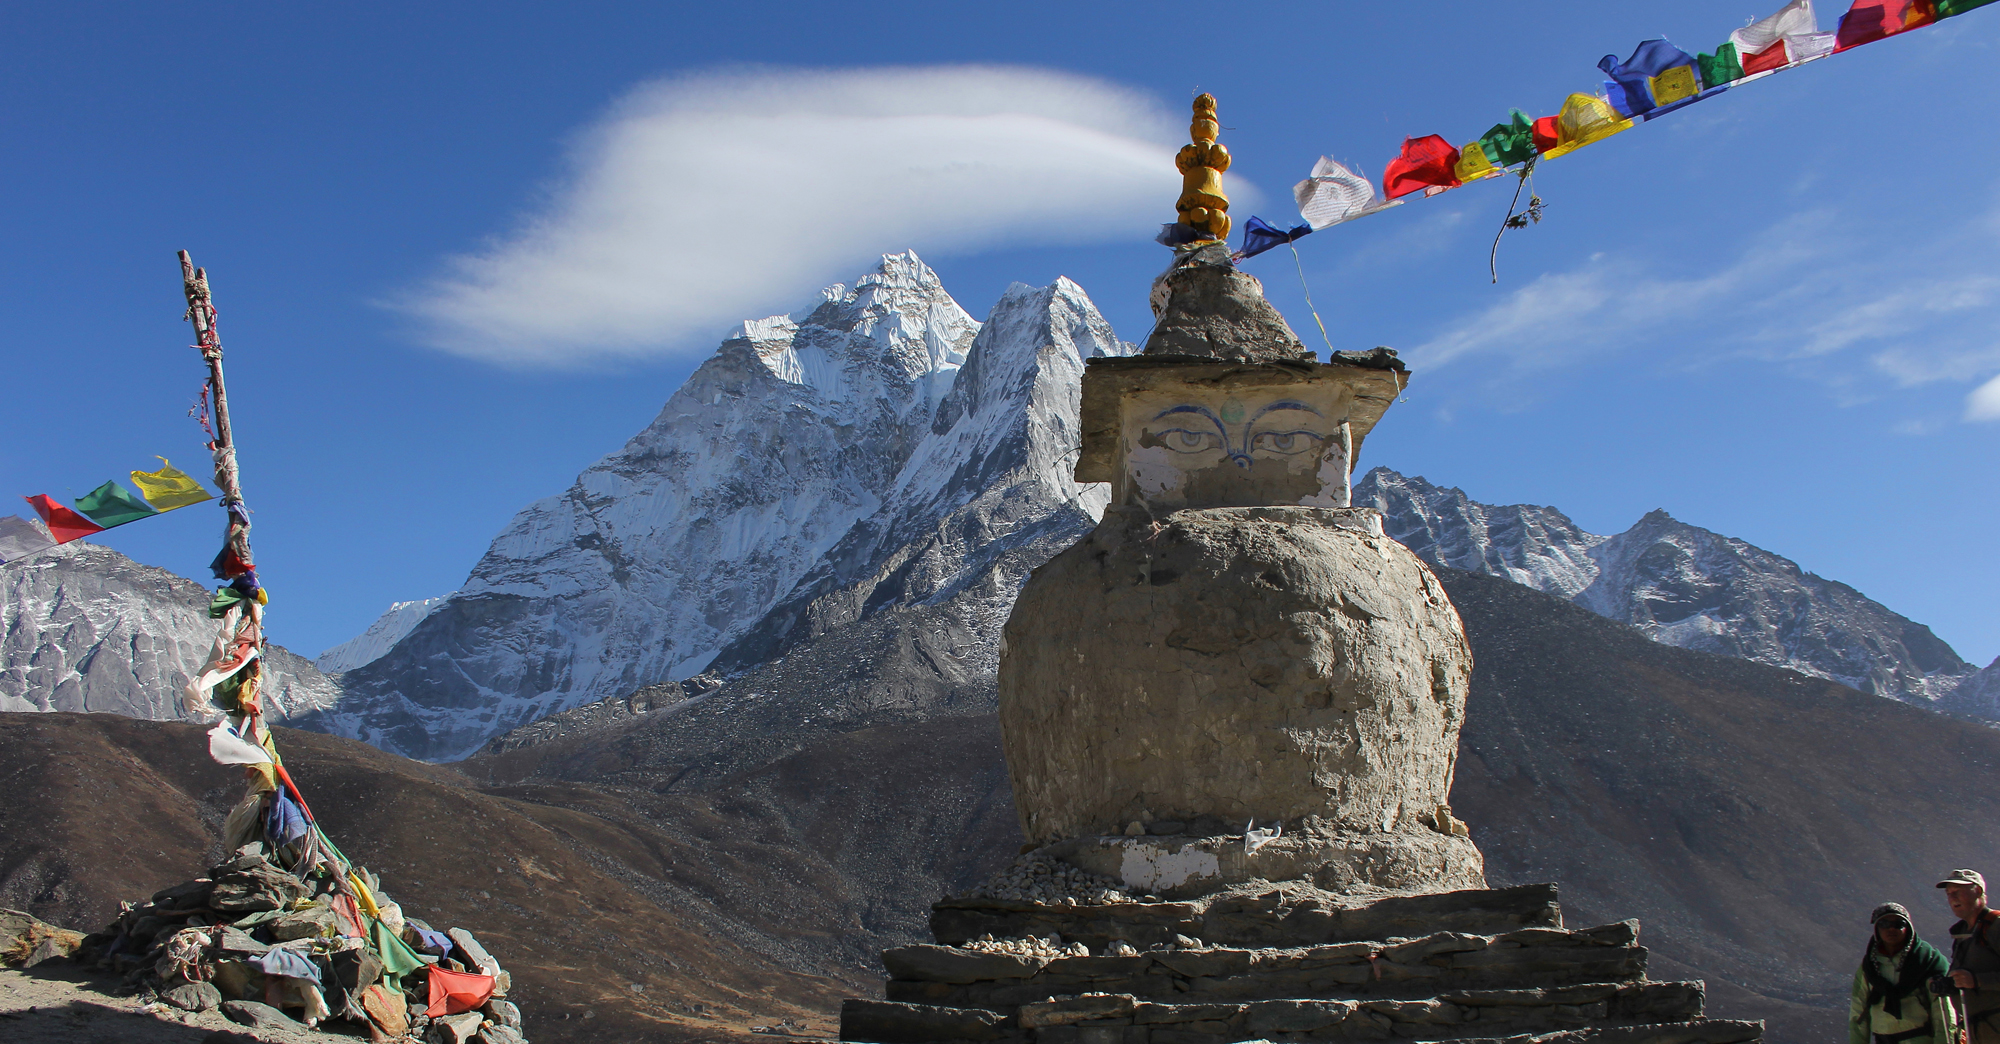 Chorten and view of Ama Dablam above Dingboche in Nepal